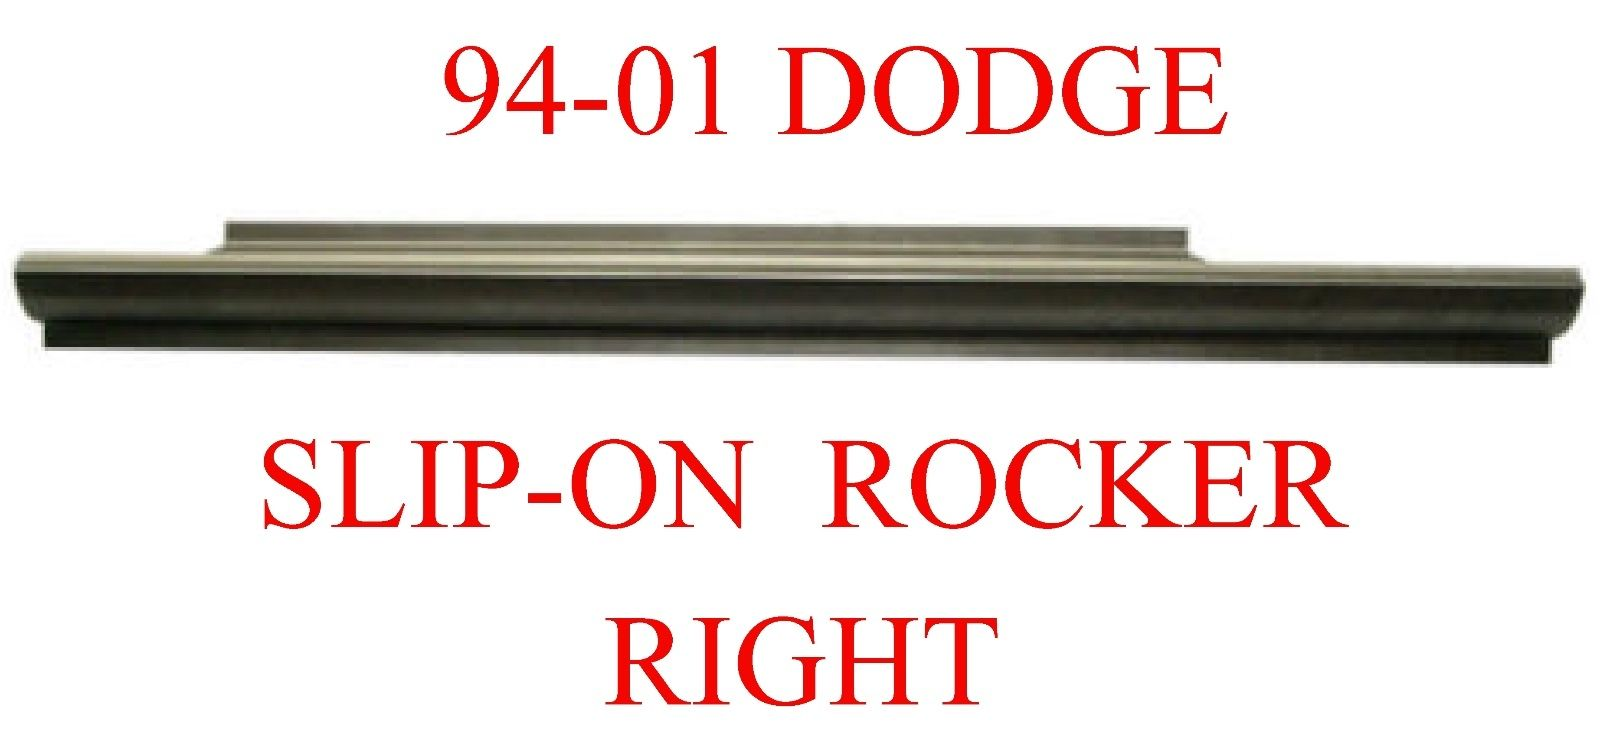 94-01 Dodge Ram Right Slip-On Rocker Panel